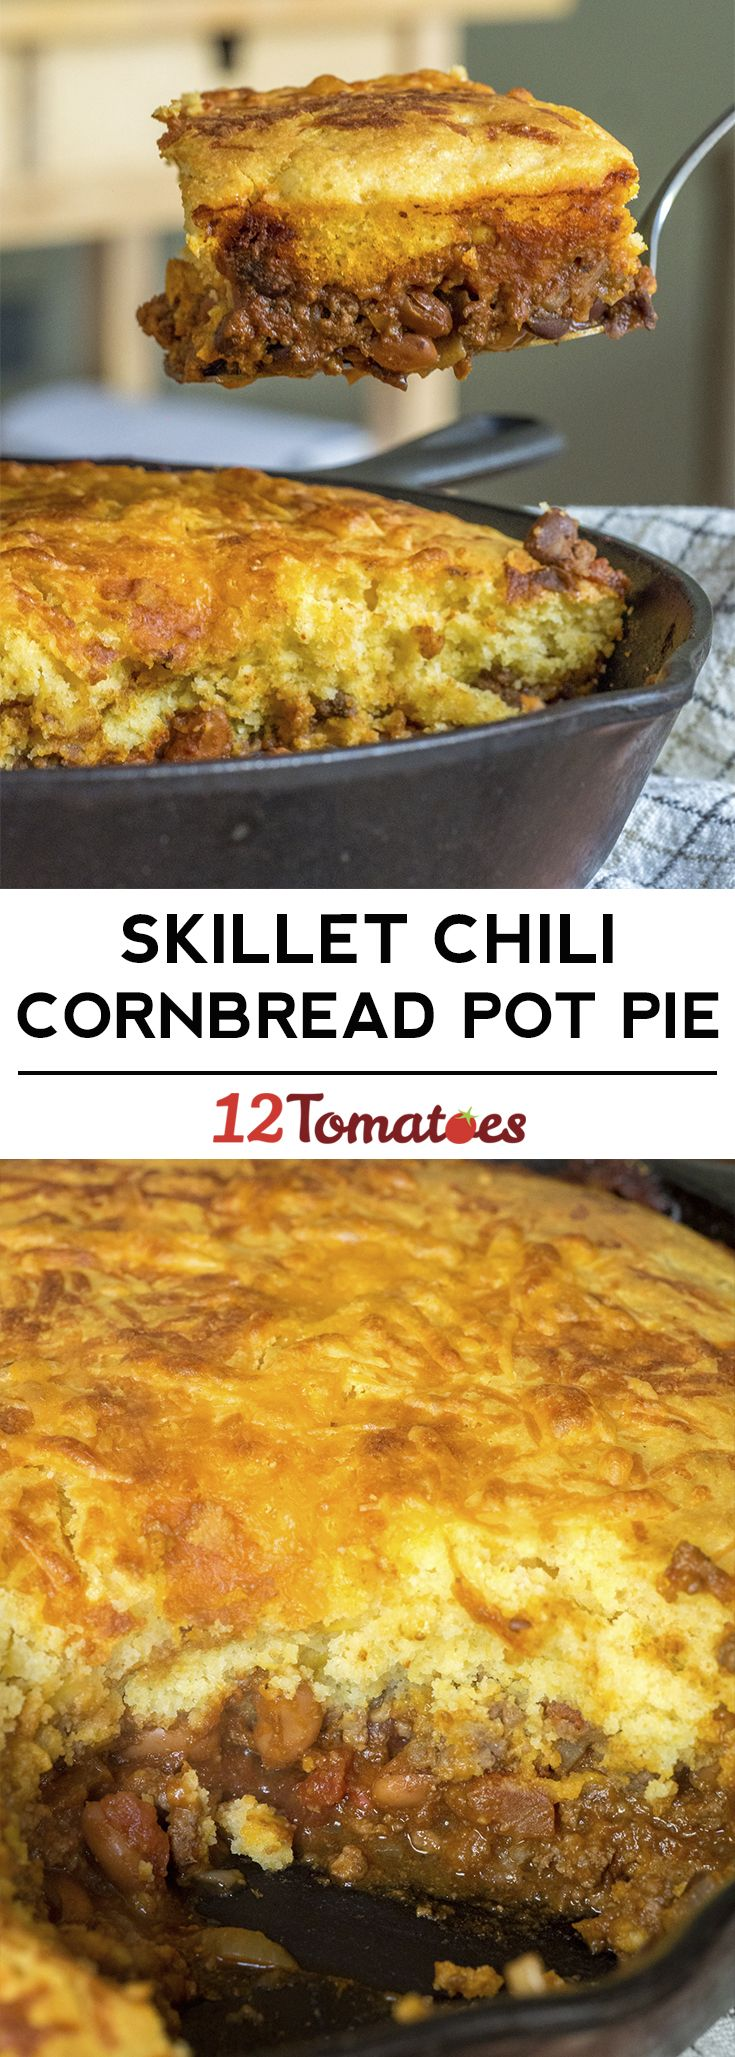 Skillet Chili Cornbread Pot Pie